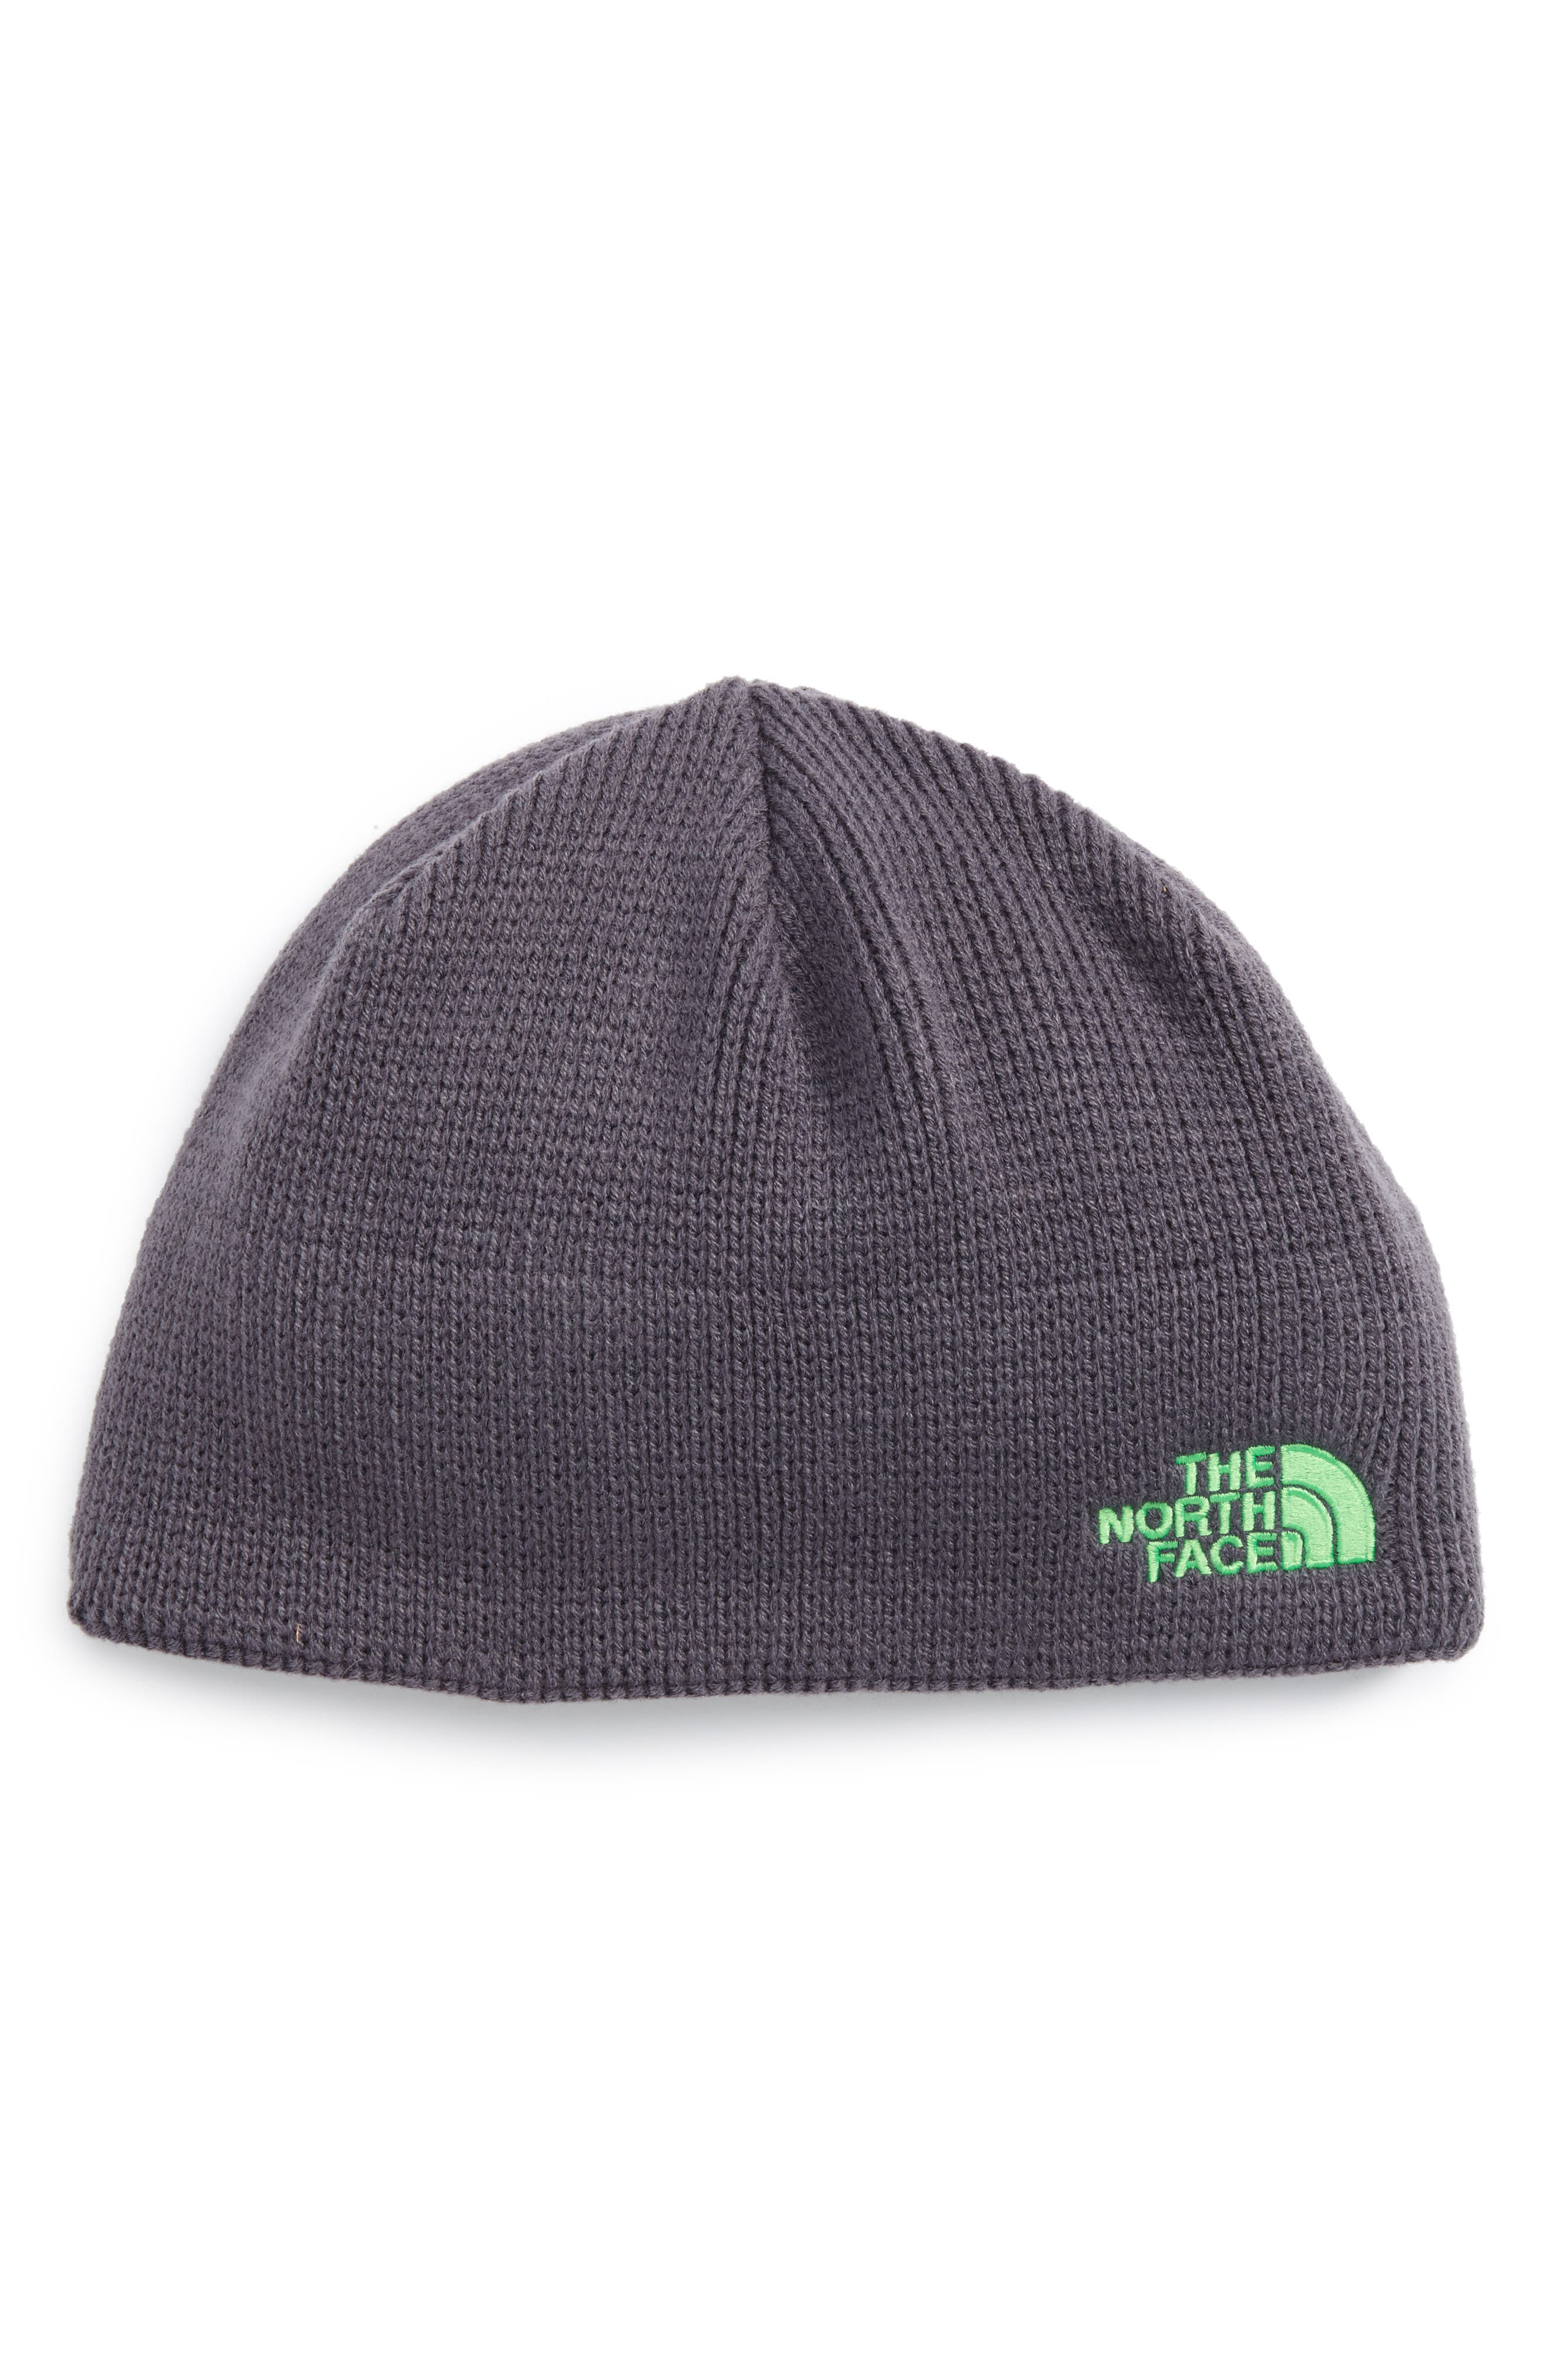 Youth Bones Fleece Lined Beanie,                             Main thumbnail 1, color,                             Graphite Grey/ Krypton Green